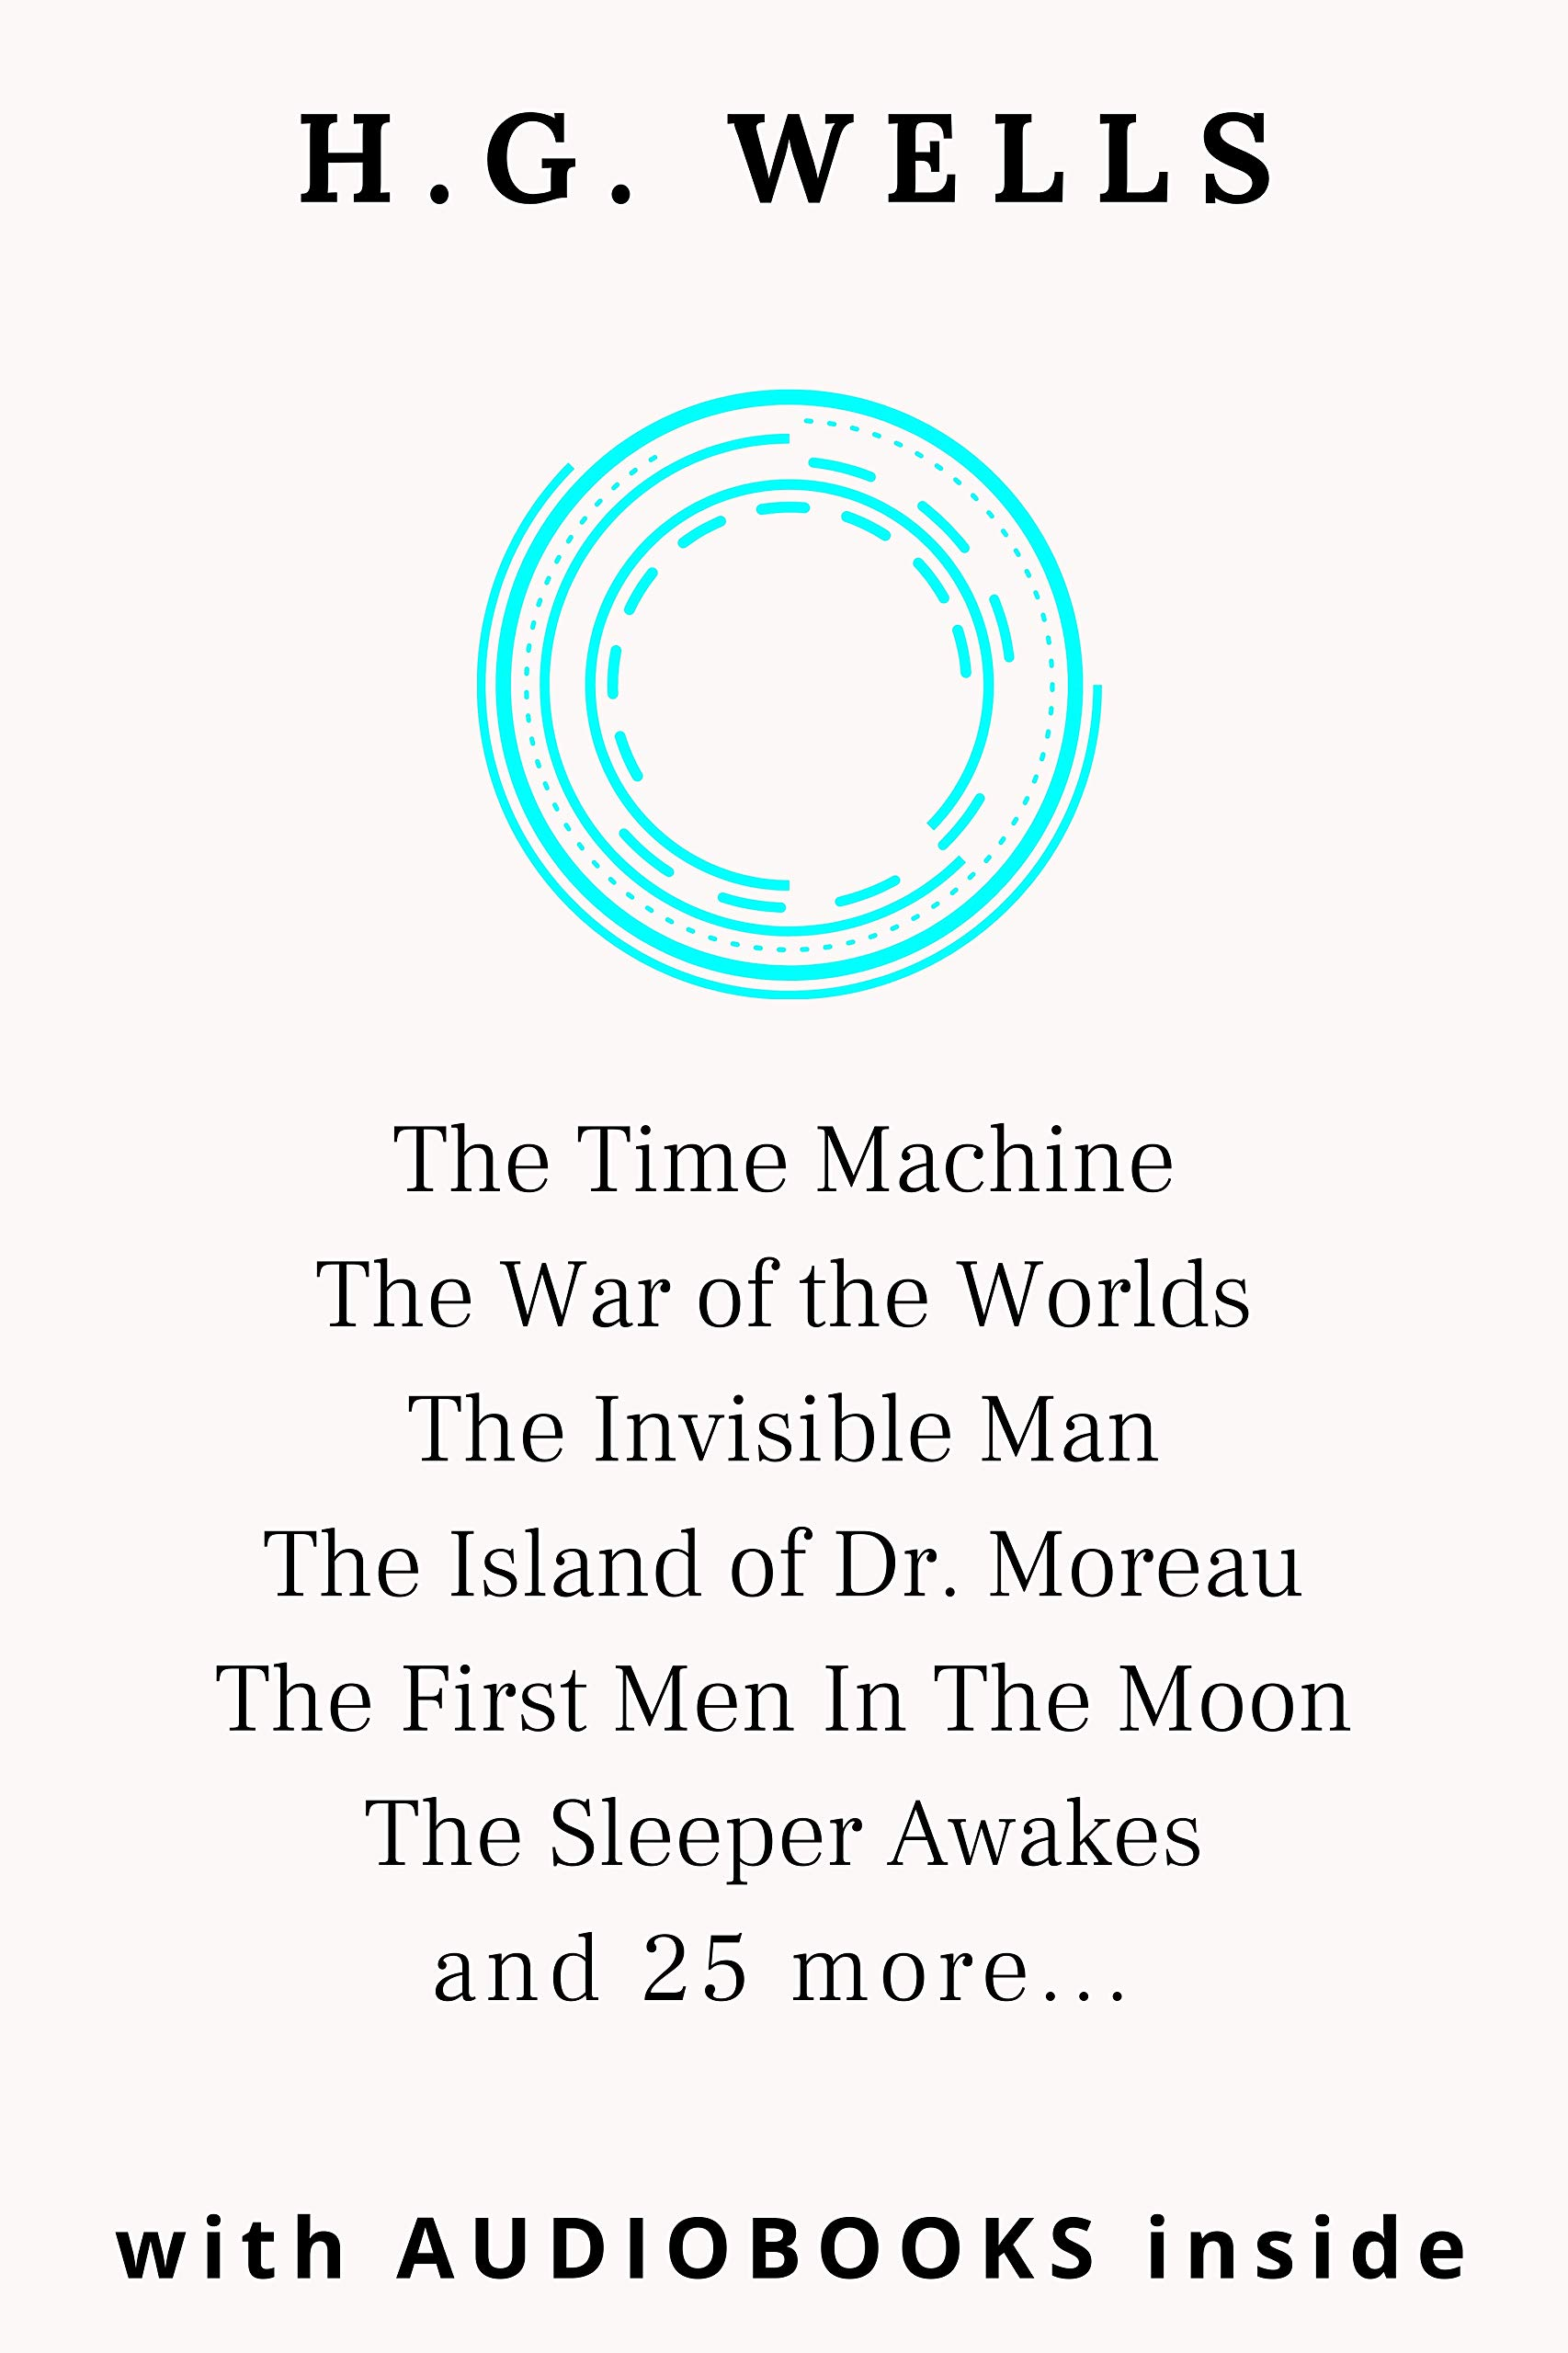 H.G. Wells (31 books): The Time Machine, The War of the Worlds, The Invisible Man, The Island of Dr. Moreau, The First Men In The Moon, The Sleeper Awakes - WITH AUDIOBOOKS INSIDE